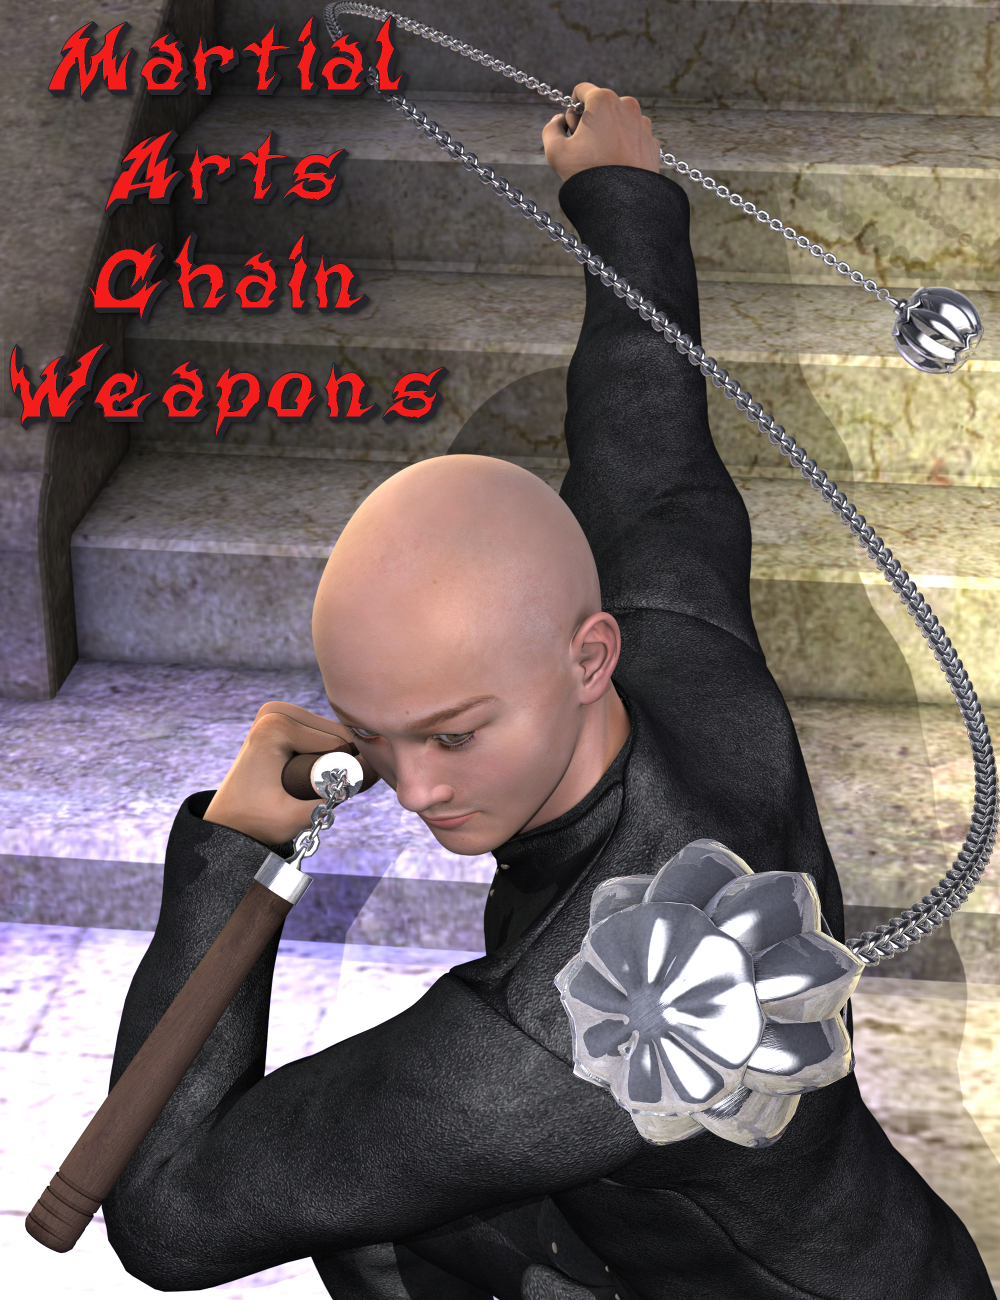 Martial Arts Chain Weapons by: Sickleyield, 3D Models by Daz 3D